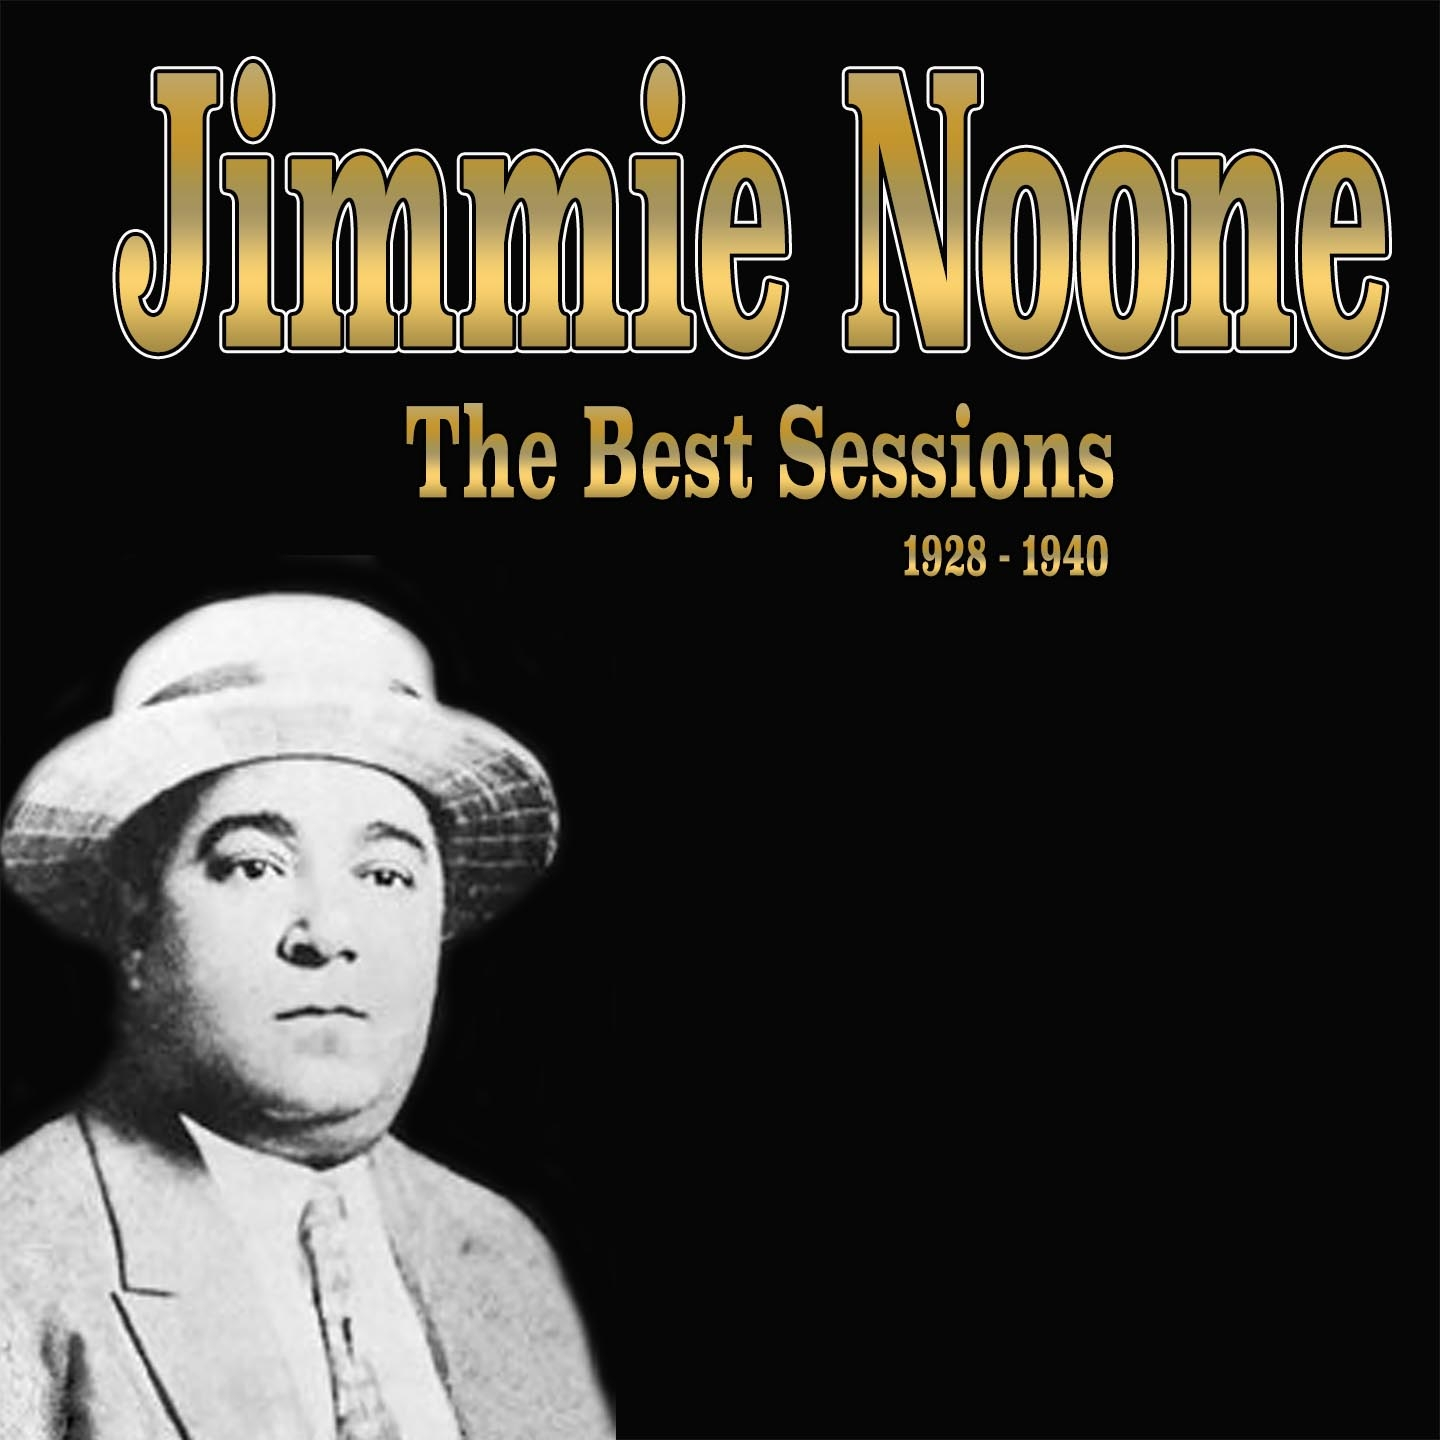 The Best Sessions (1928-1940)